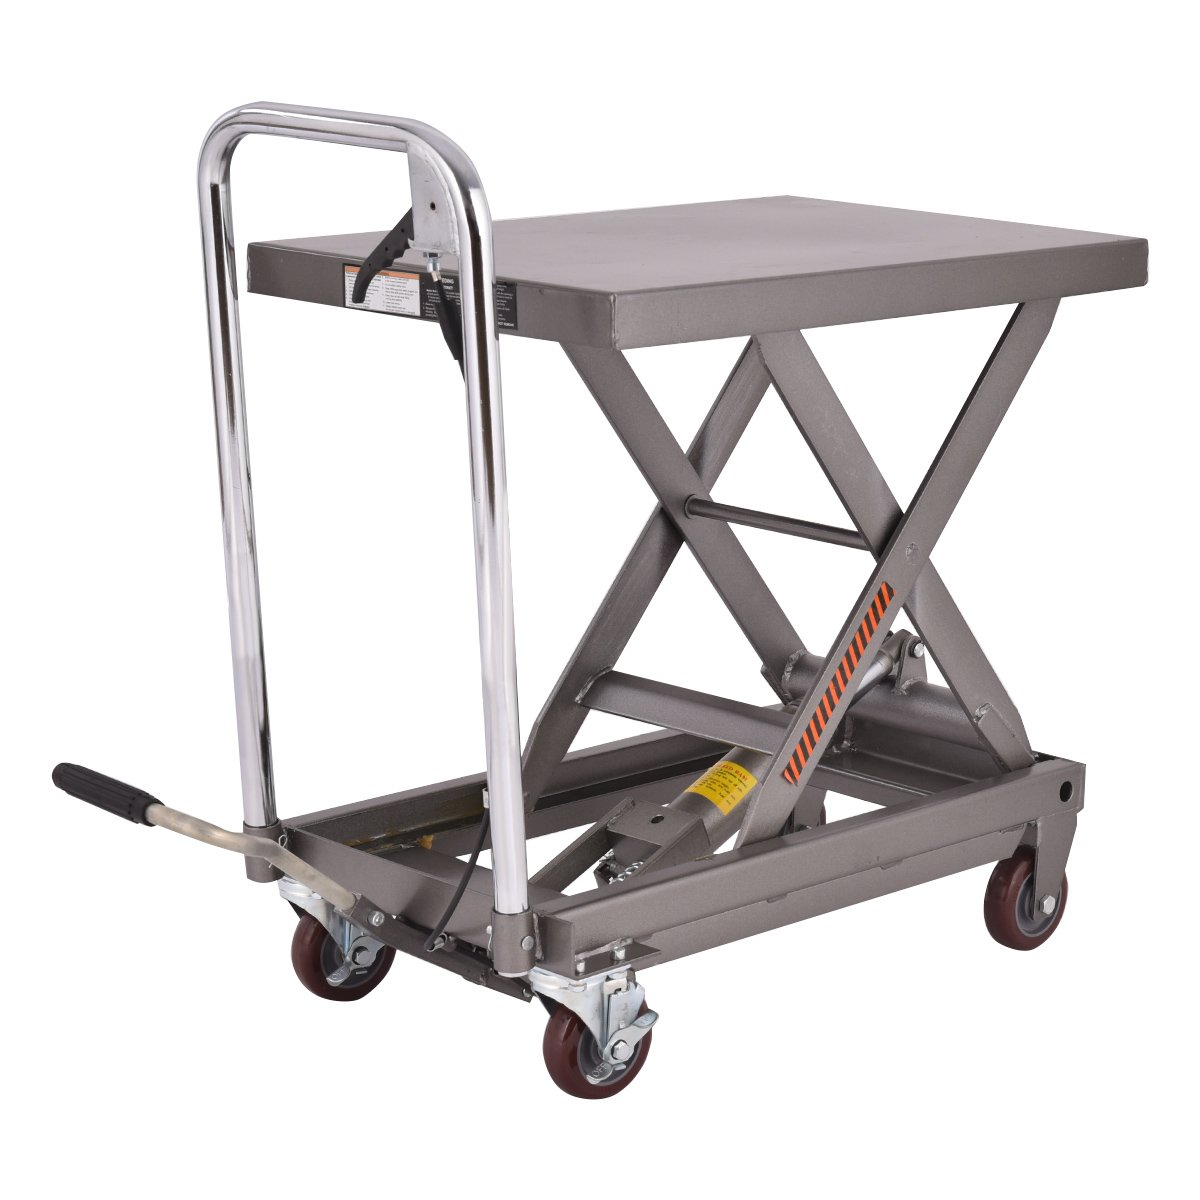 Ordinaire Amazon.com: Goplus Hydraulic Scissor Lift Table Cart Dolly Scissor Jack  Hoist Stand 500LB Capacity W/ Foot Pump: Home Improvement